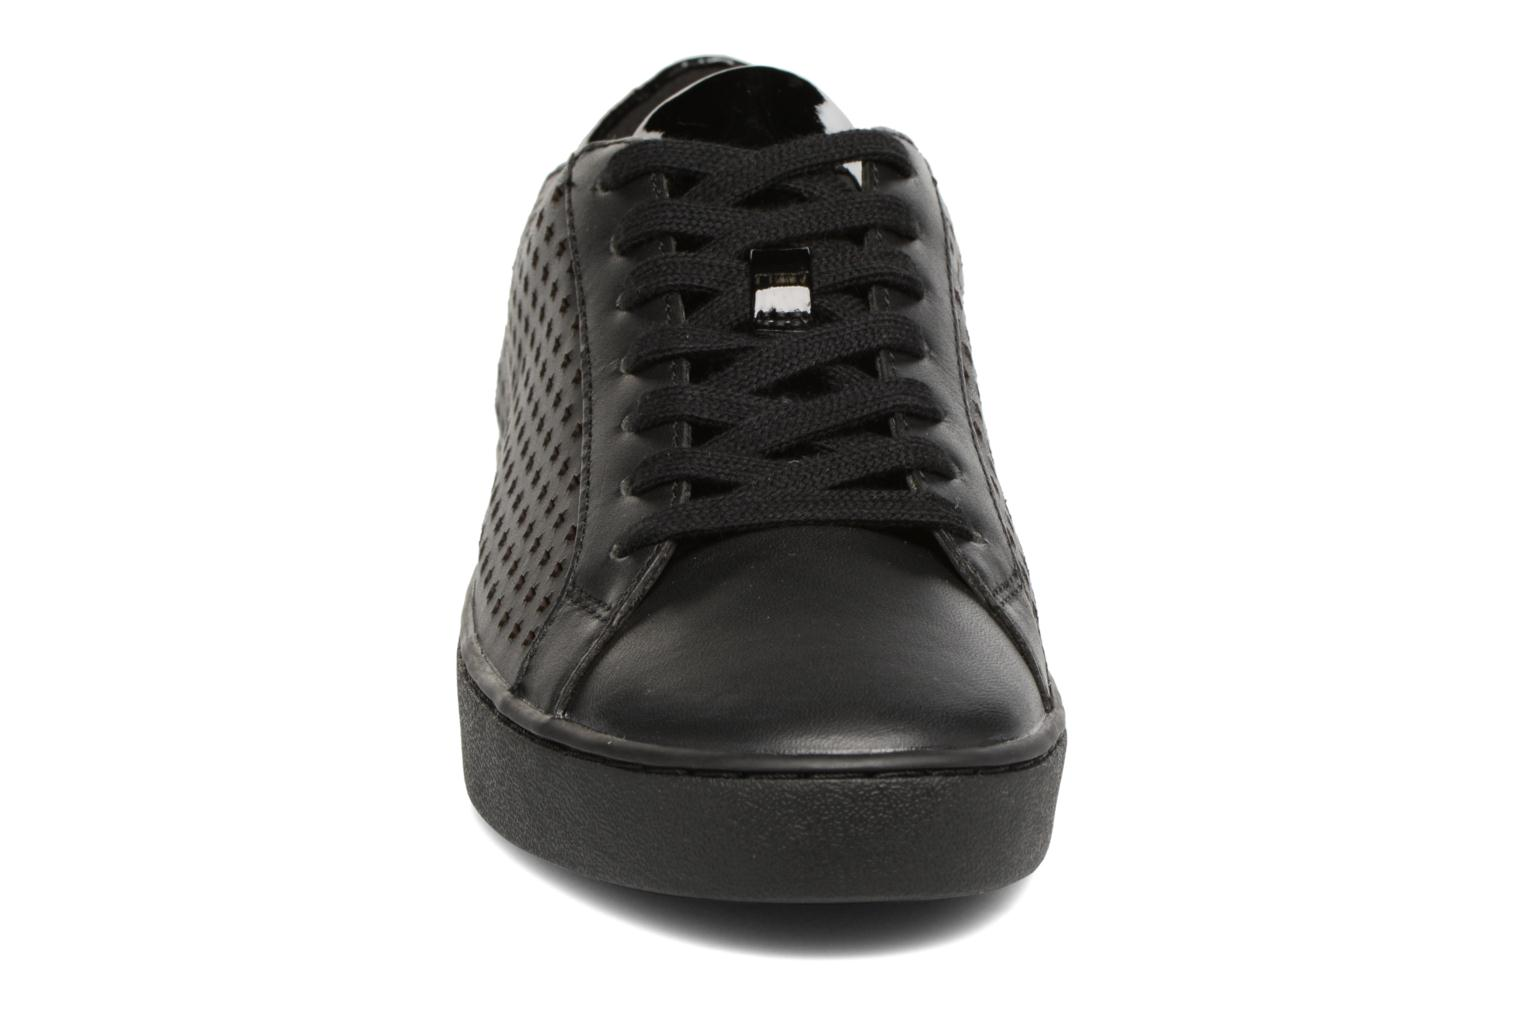 Irving lace up Black